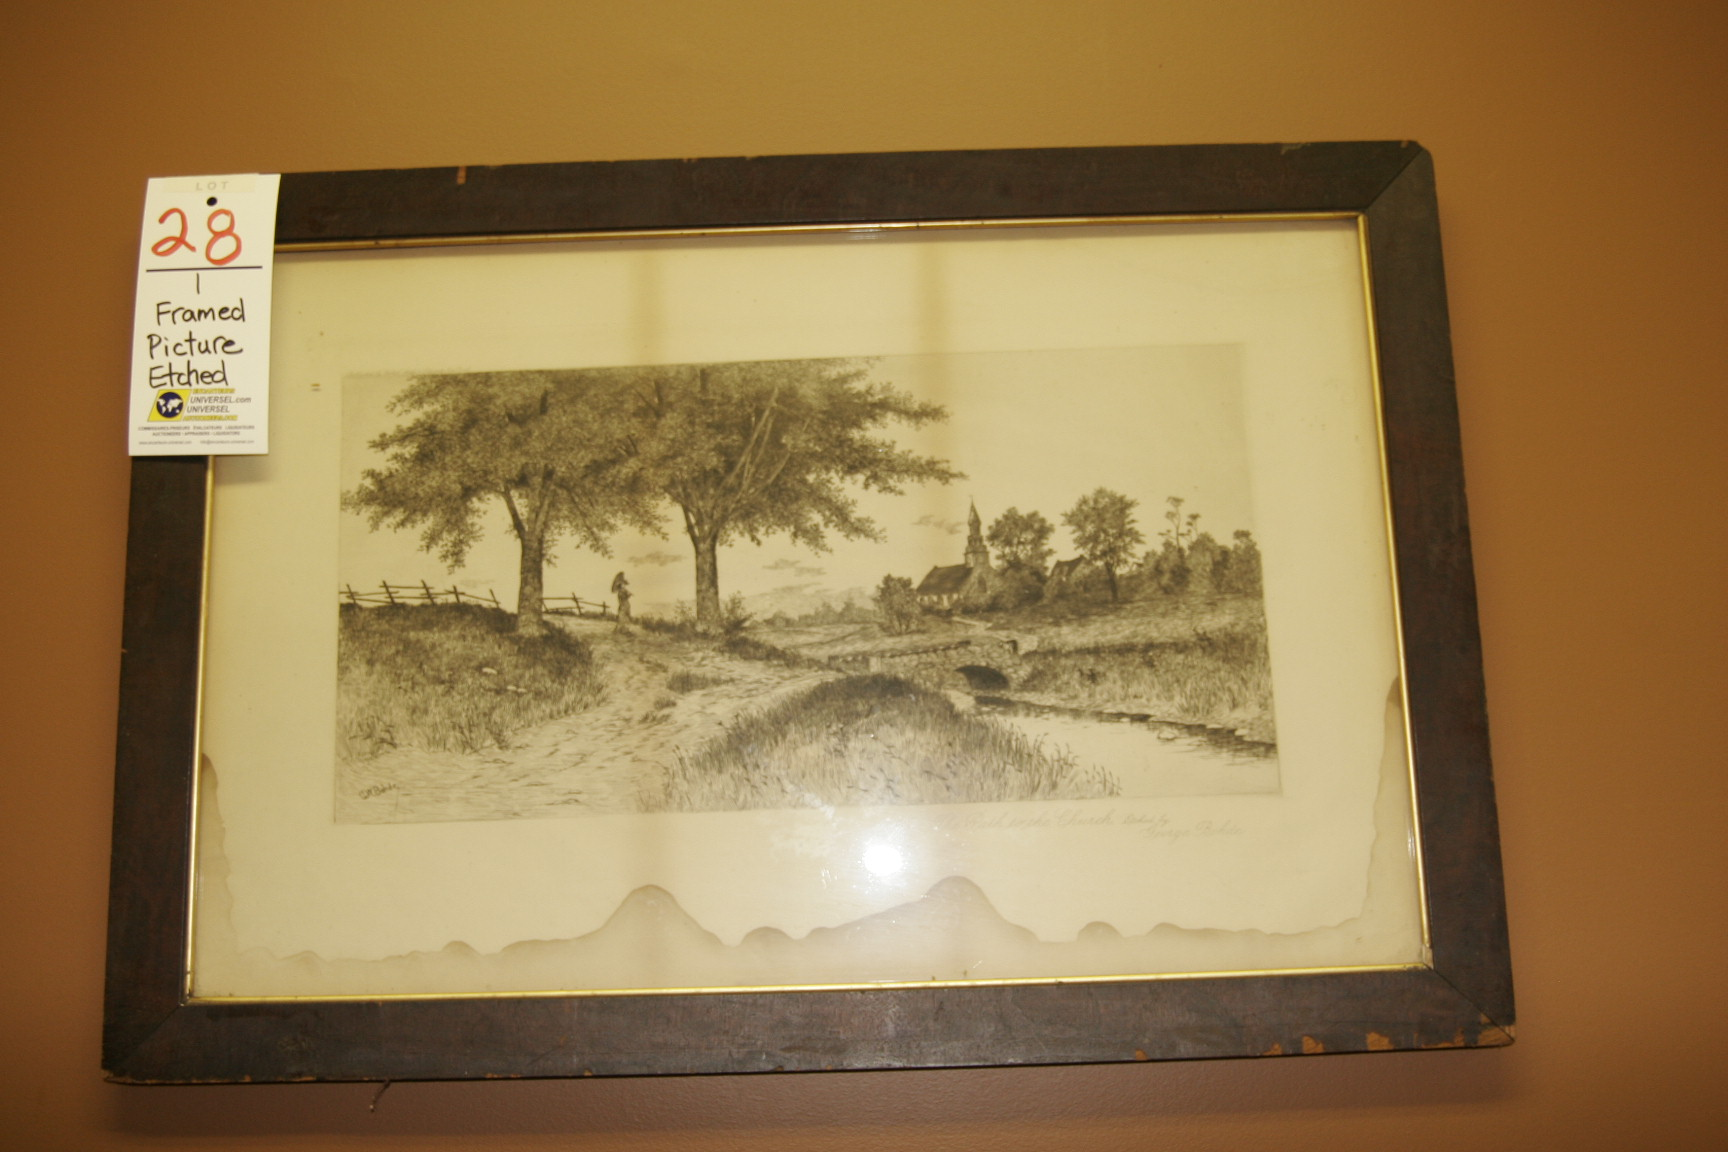 Framed Picture Etched